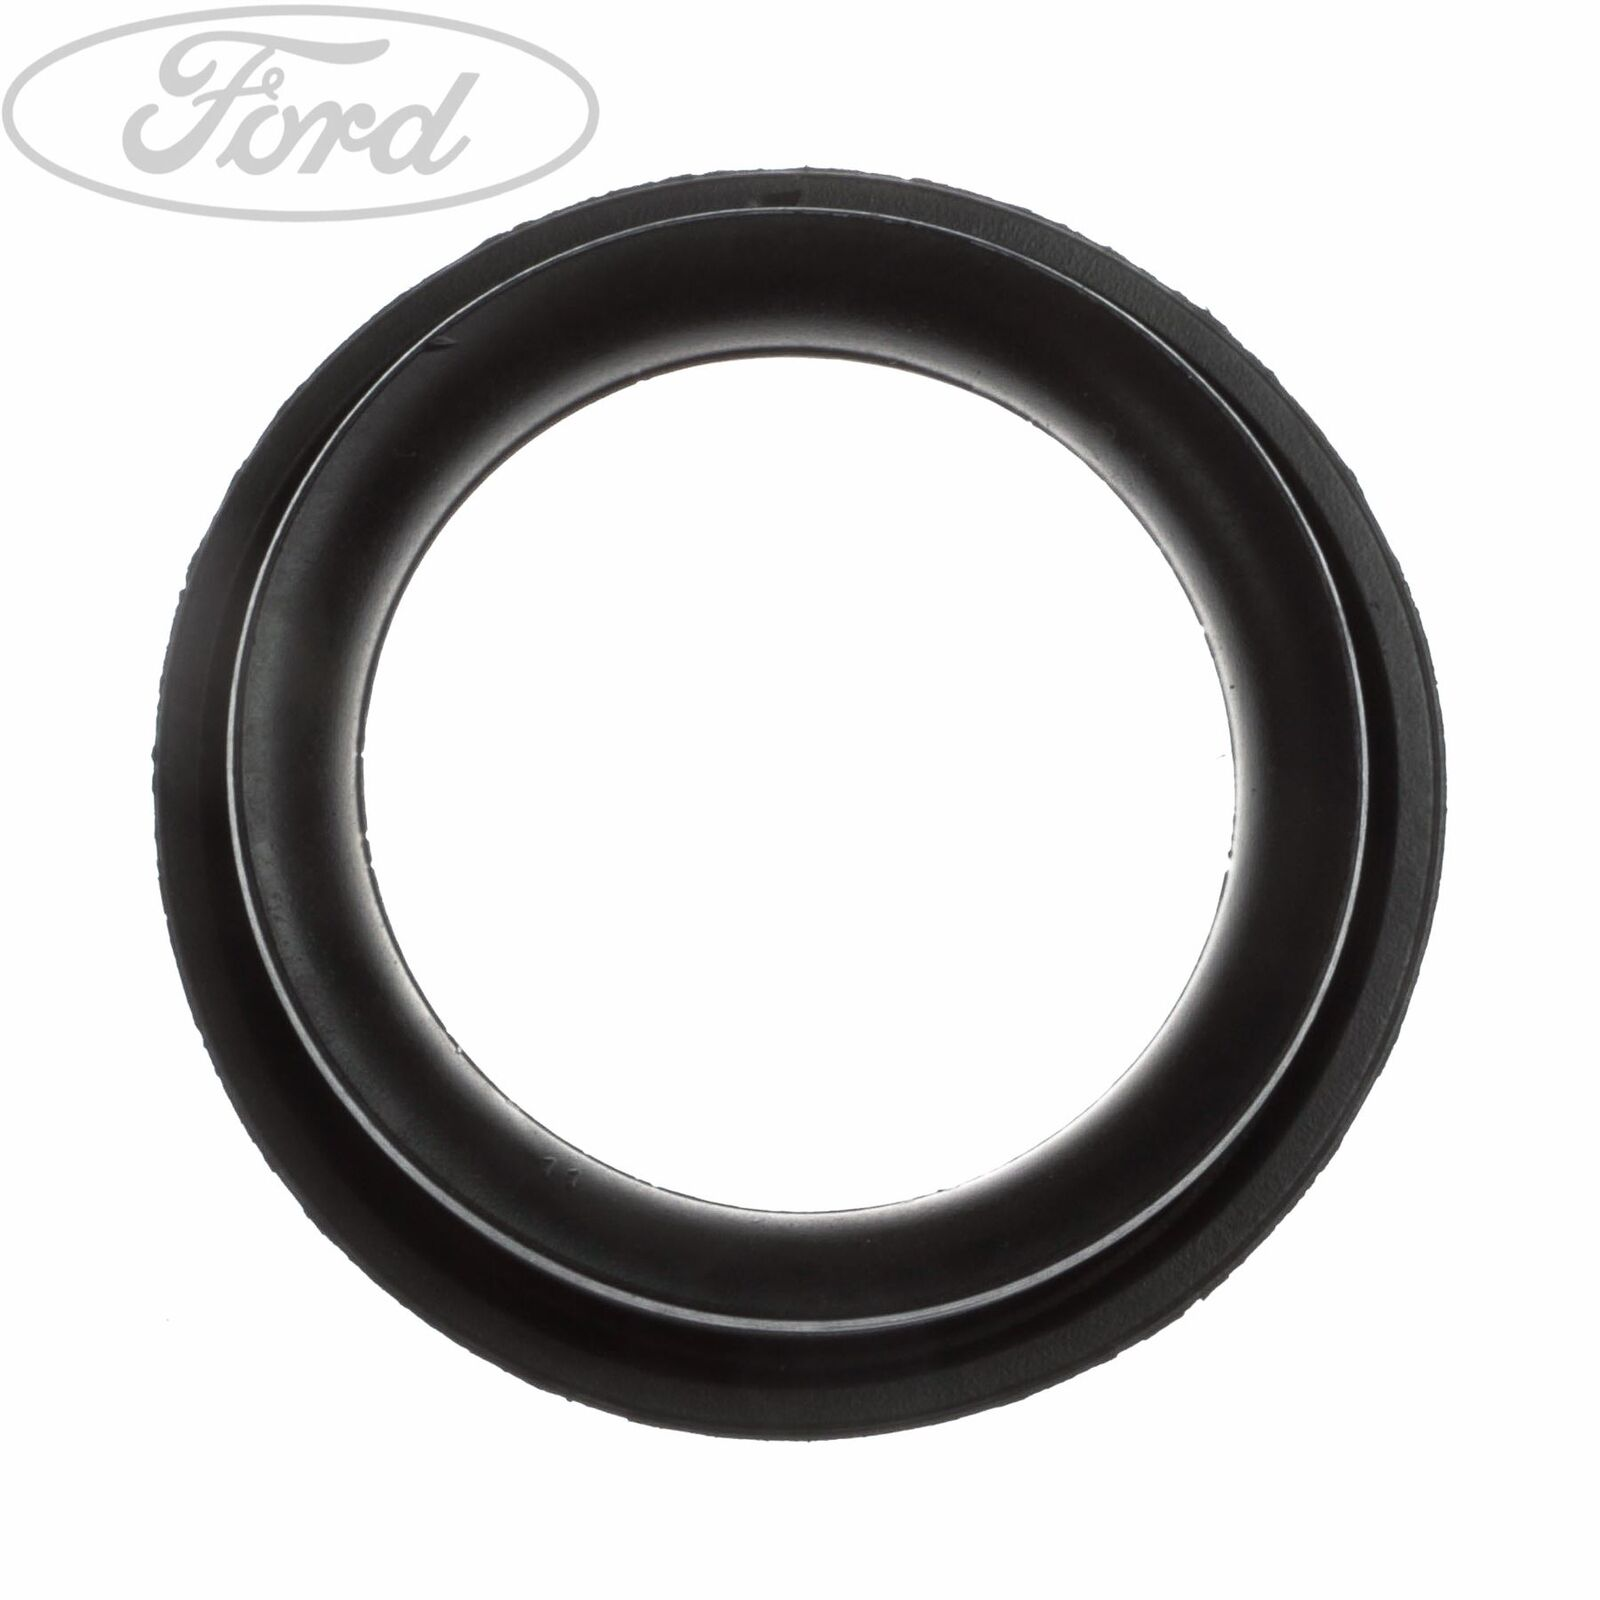 Genuine Ford Ka Mk2 Air Box Grommet 1677161 499 Picclick Uk Fuse In 1 Of 4only 5 Available